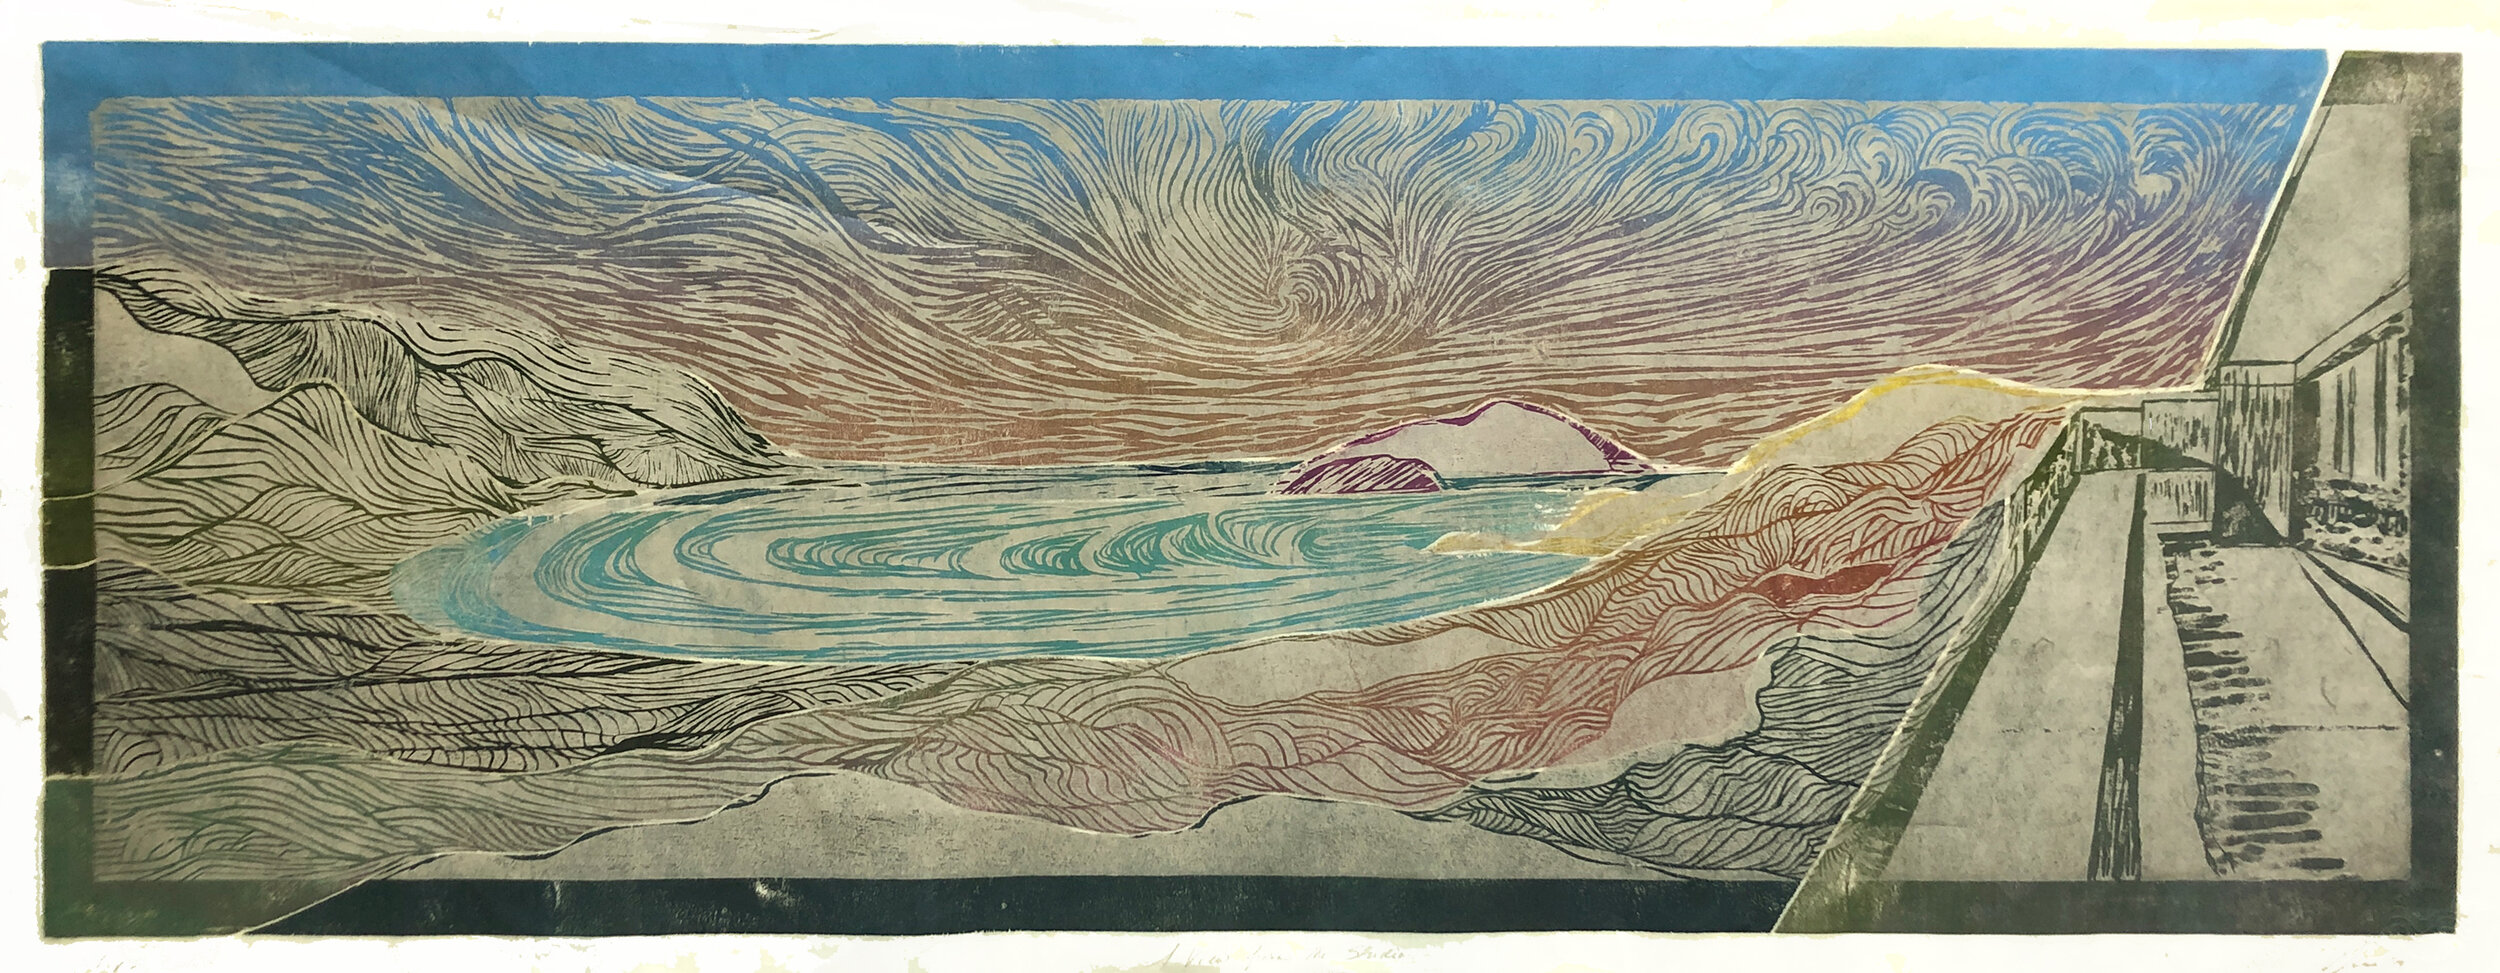 """A View from the Studio (1 of 4)    2 block woodcut print  18'"""" x 48""""  varied edition $1000  Click image to enlarge ⦿  Inquire"""